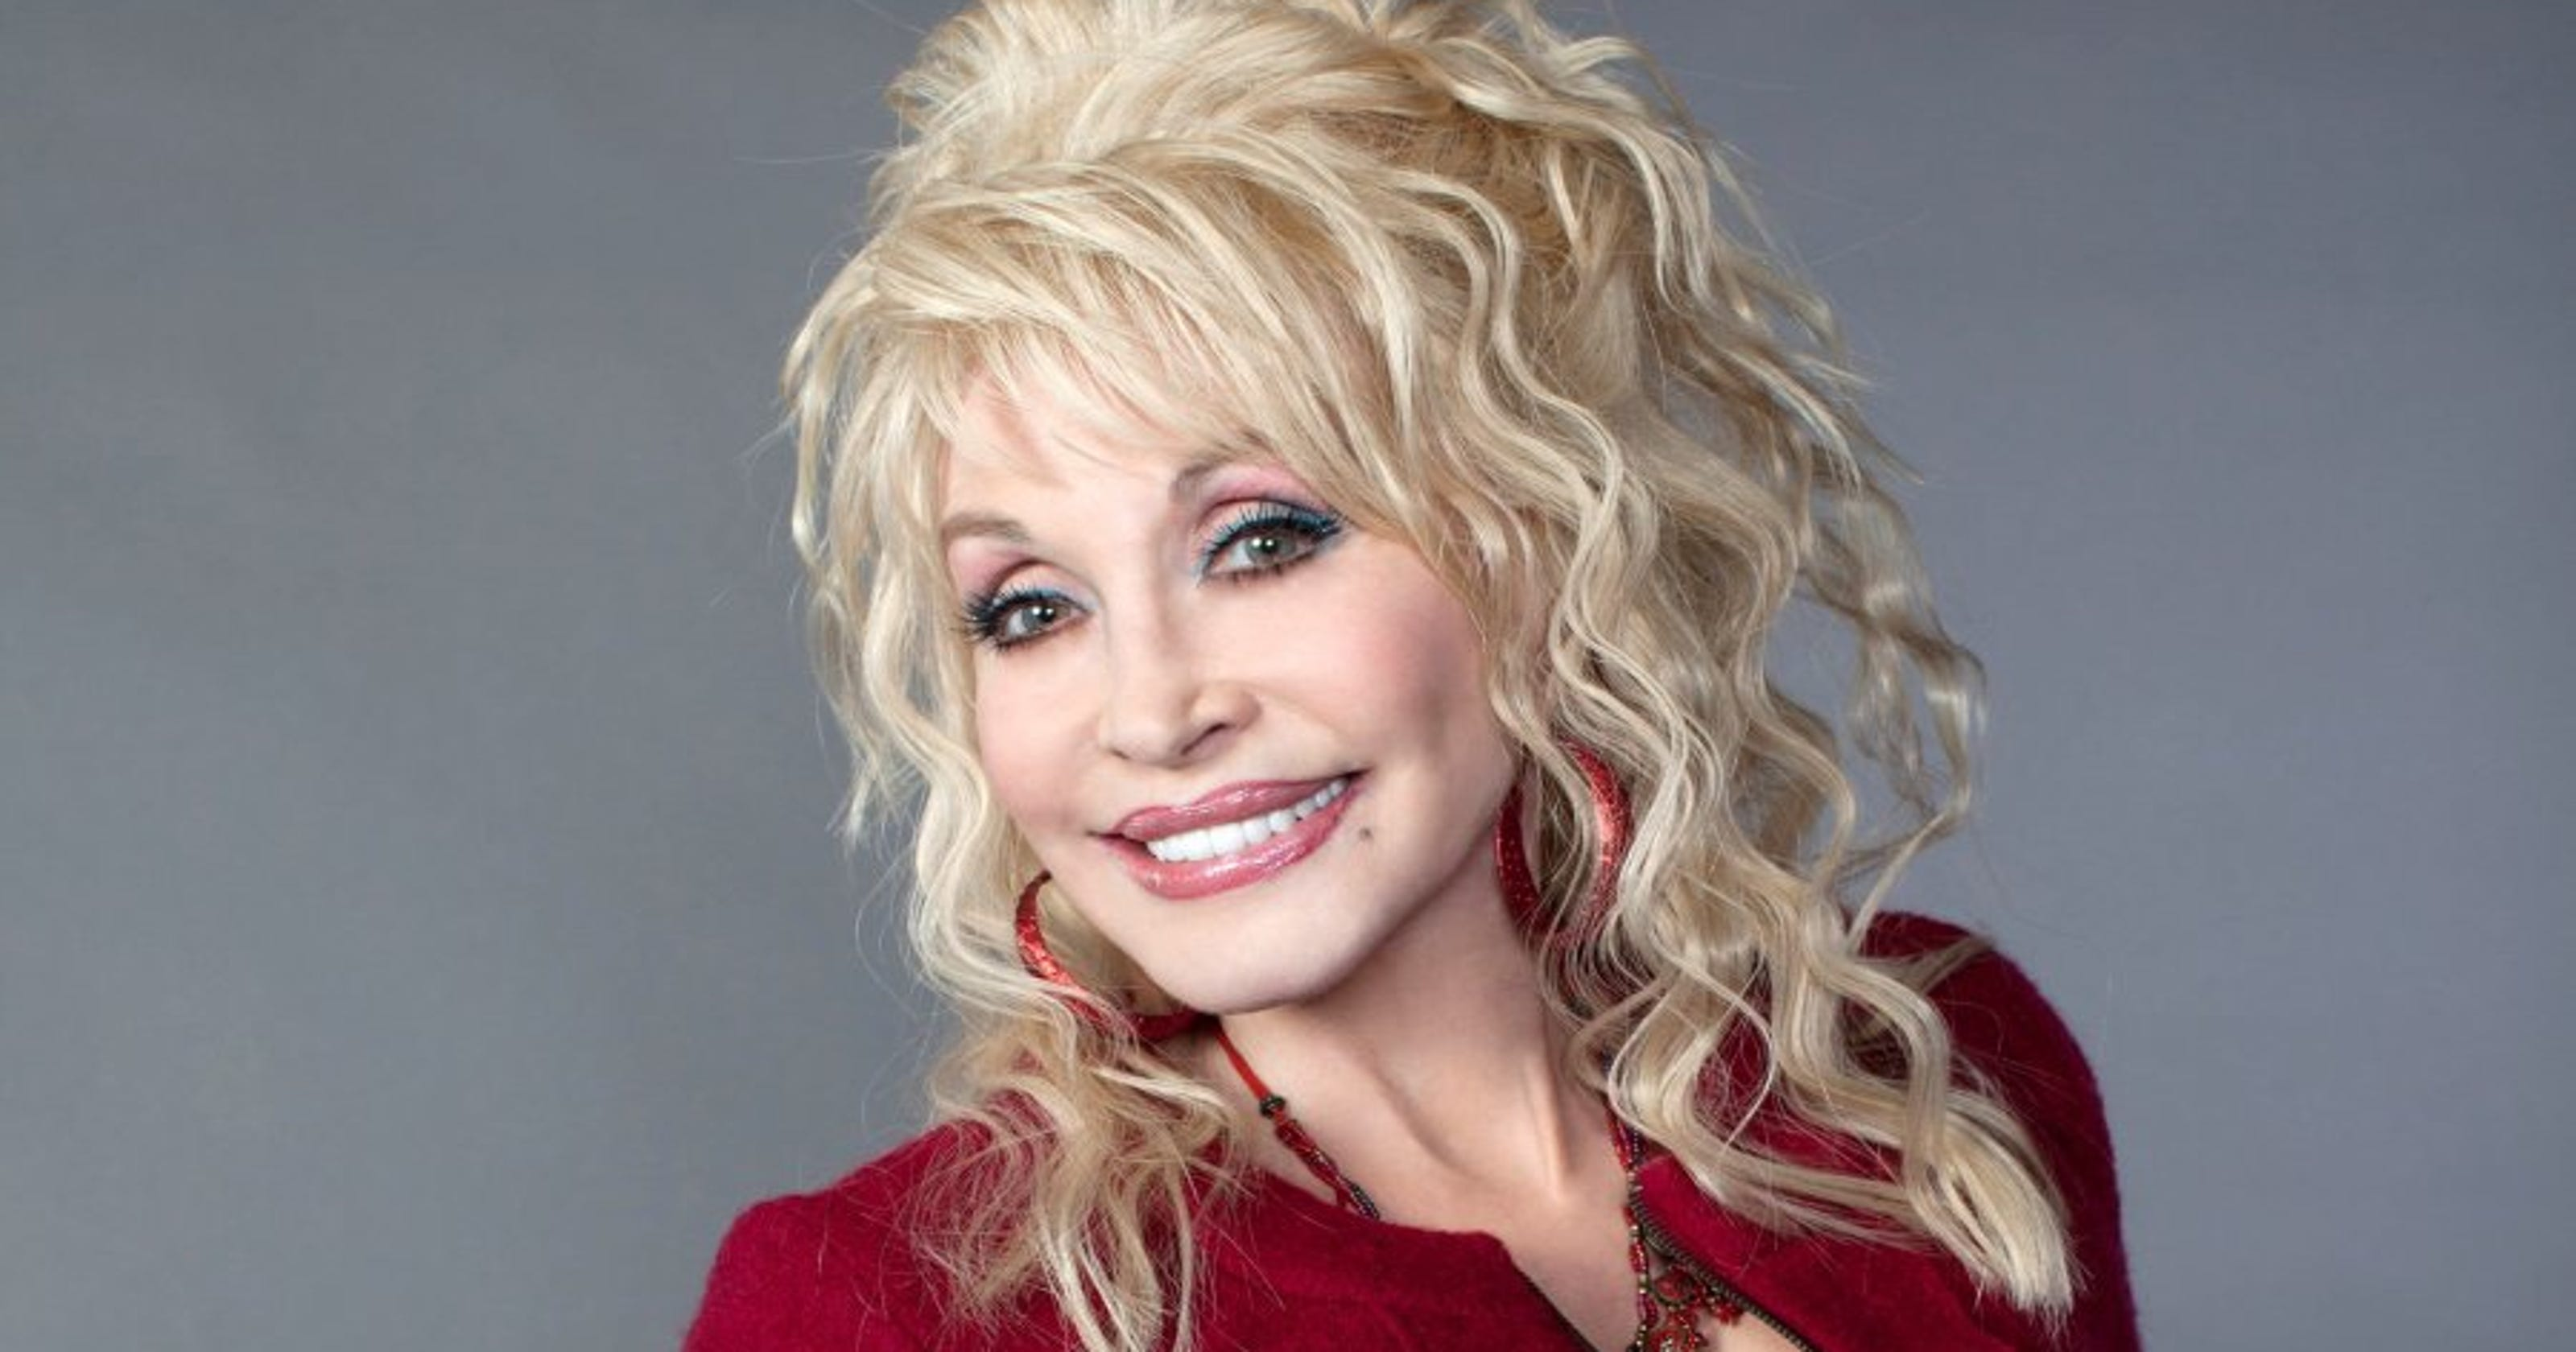 Dolly Partons Christmas Of Many Colors Circle Of Love.Dolly Parton To Play Town Trollop In Christmas Of Many